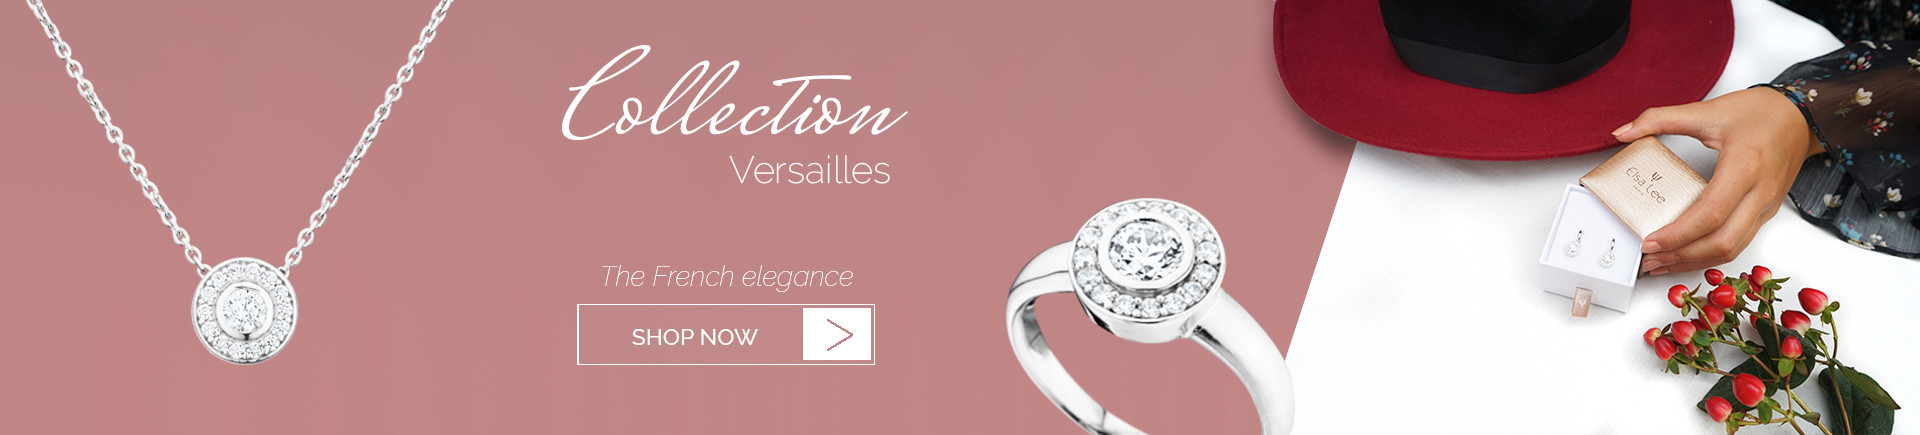 925 sterling silver and cubics of zirconia form the elegant Versailles collection